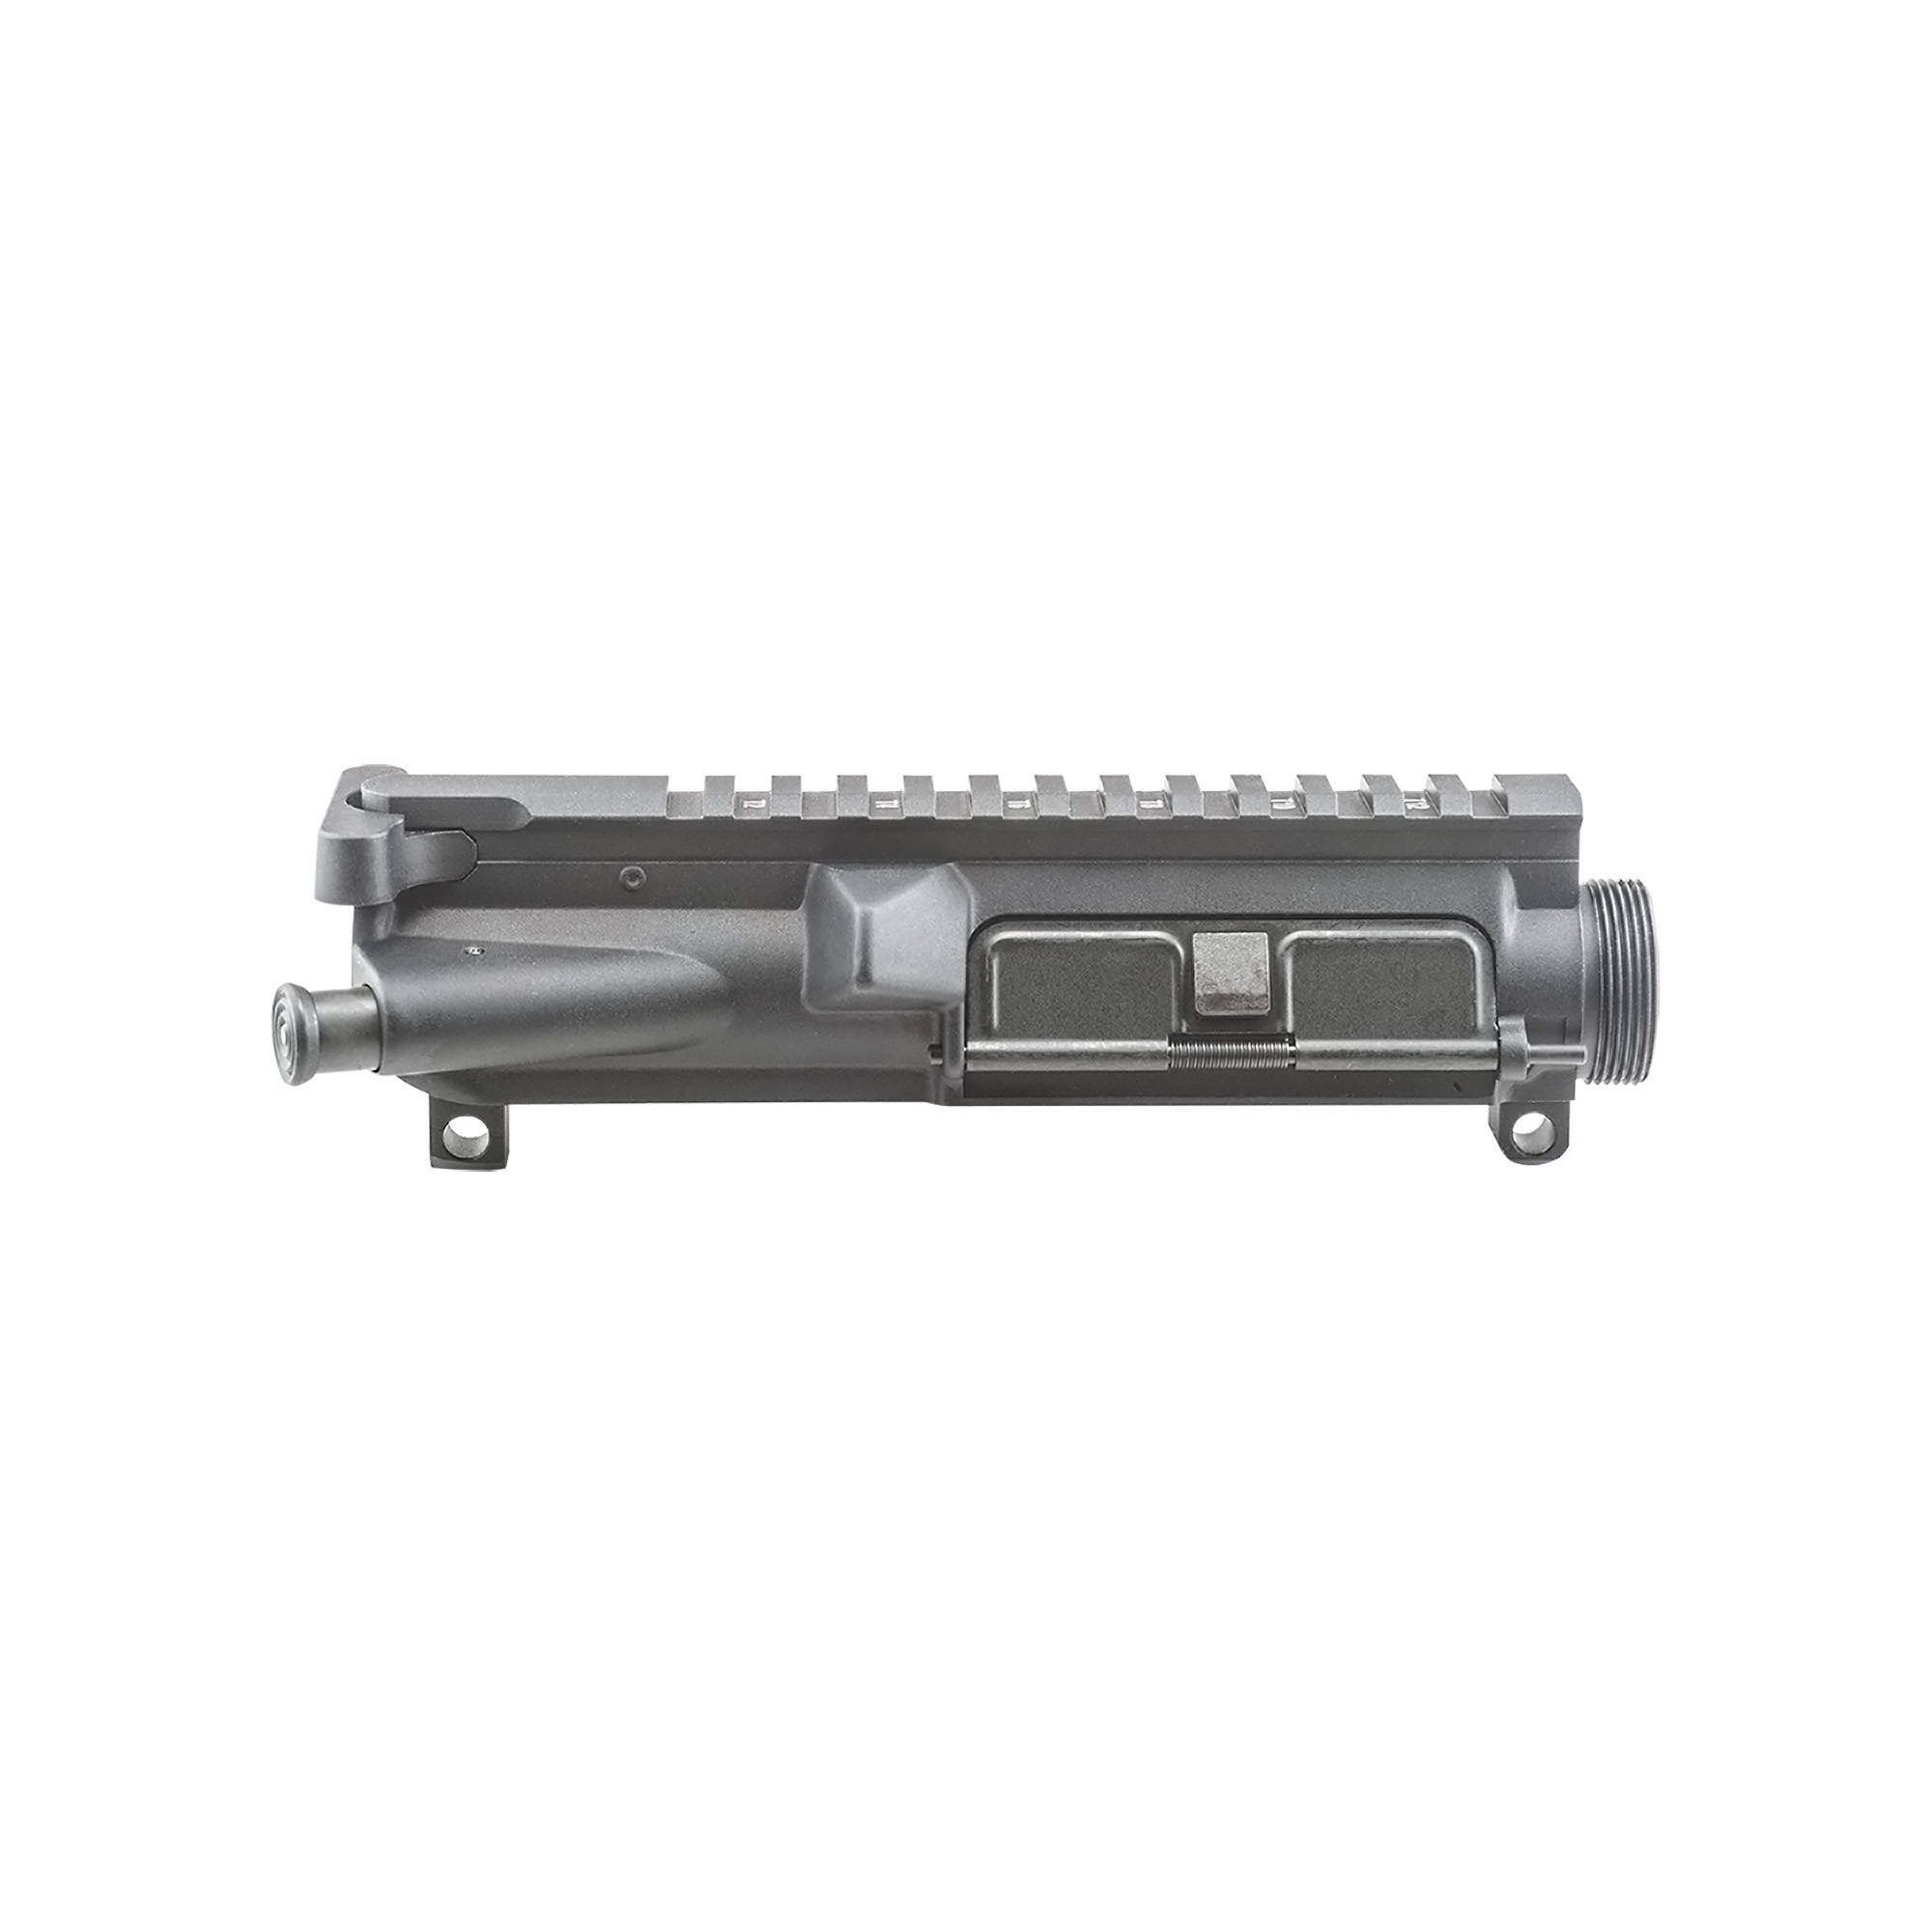 "Start your new build with a Luth-AR .223/5.56 A3 Flattop Upper Receiver comes fully assembled with an M4-type feed ramp"" 12 position Picatinny accessory rail for mounting scopes or flip-up sights. Shell deflector"" forward assist"" and ejection port cover. Precision machined from a 7075-T6 aluminum forging and hardcoat anodized for a tough"" scratch-resistant coating."